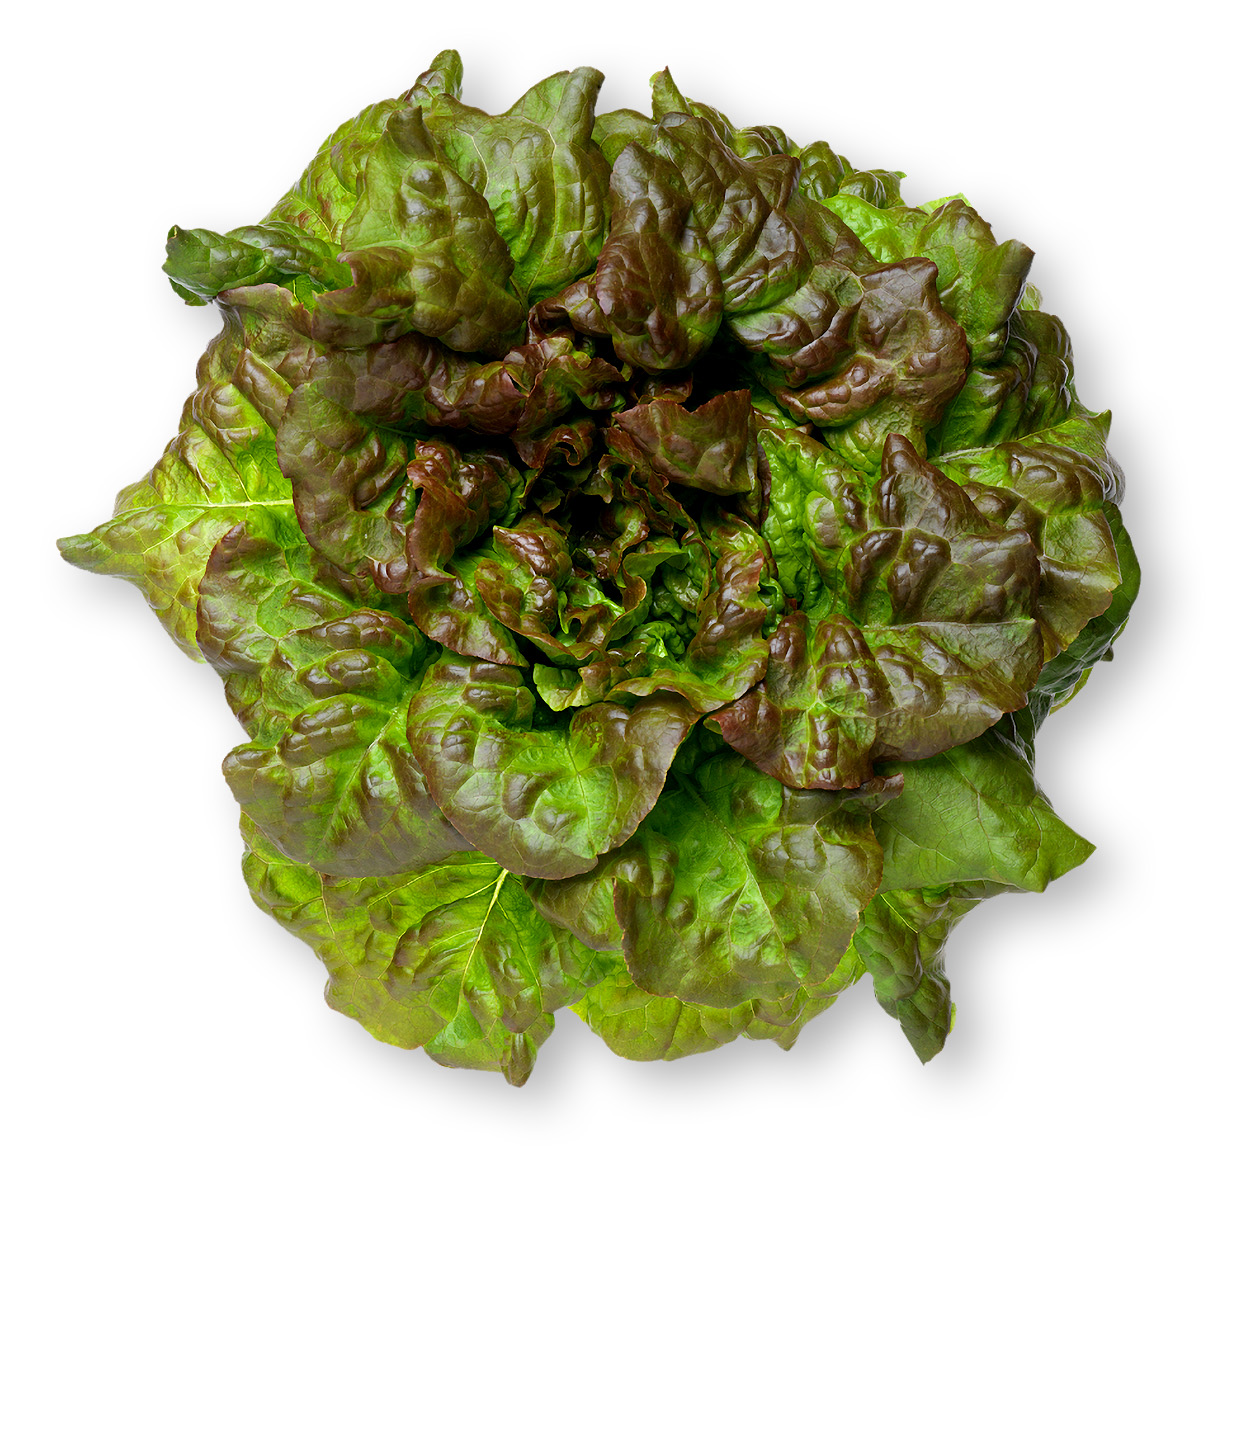 photo of a head of red leaf lettuce